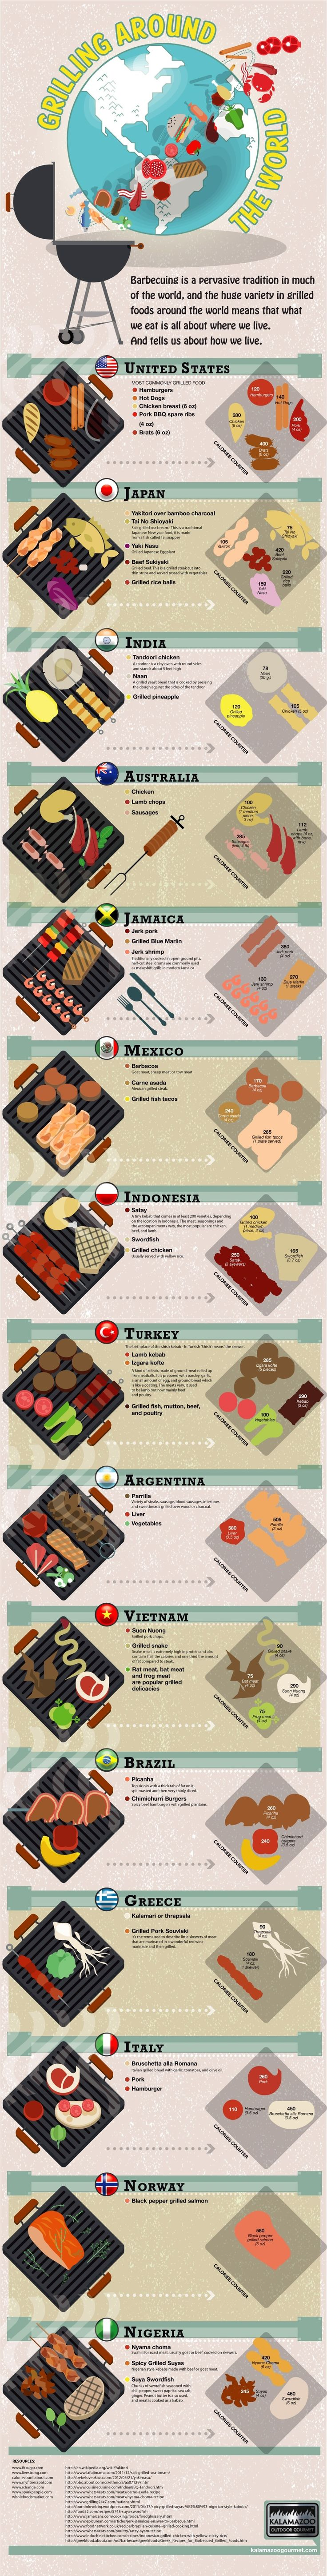 Awesome infographic showcasing grilling techniques and food from all over the world